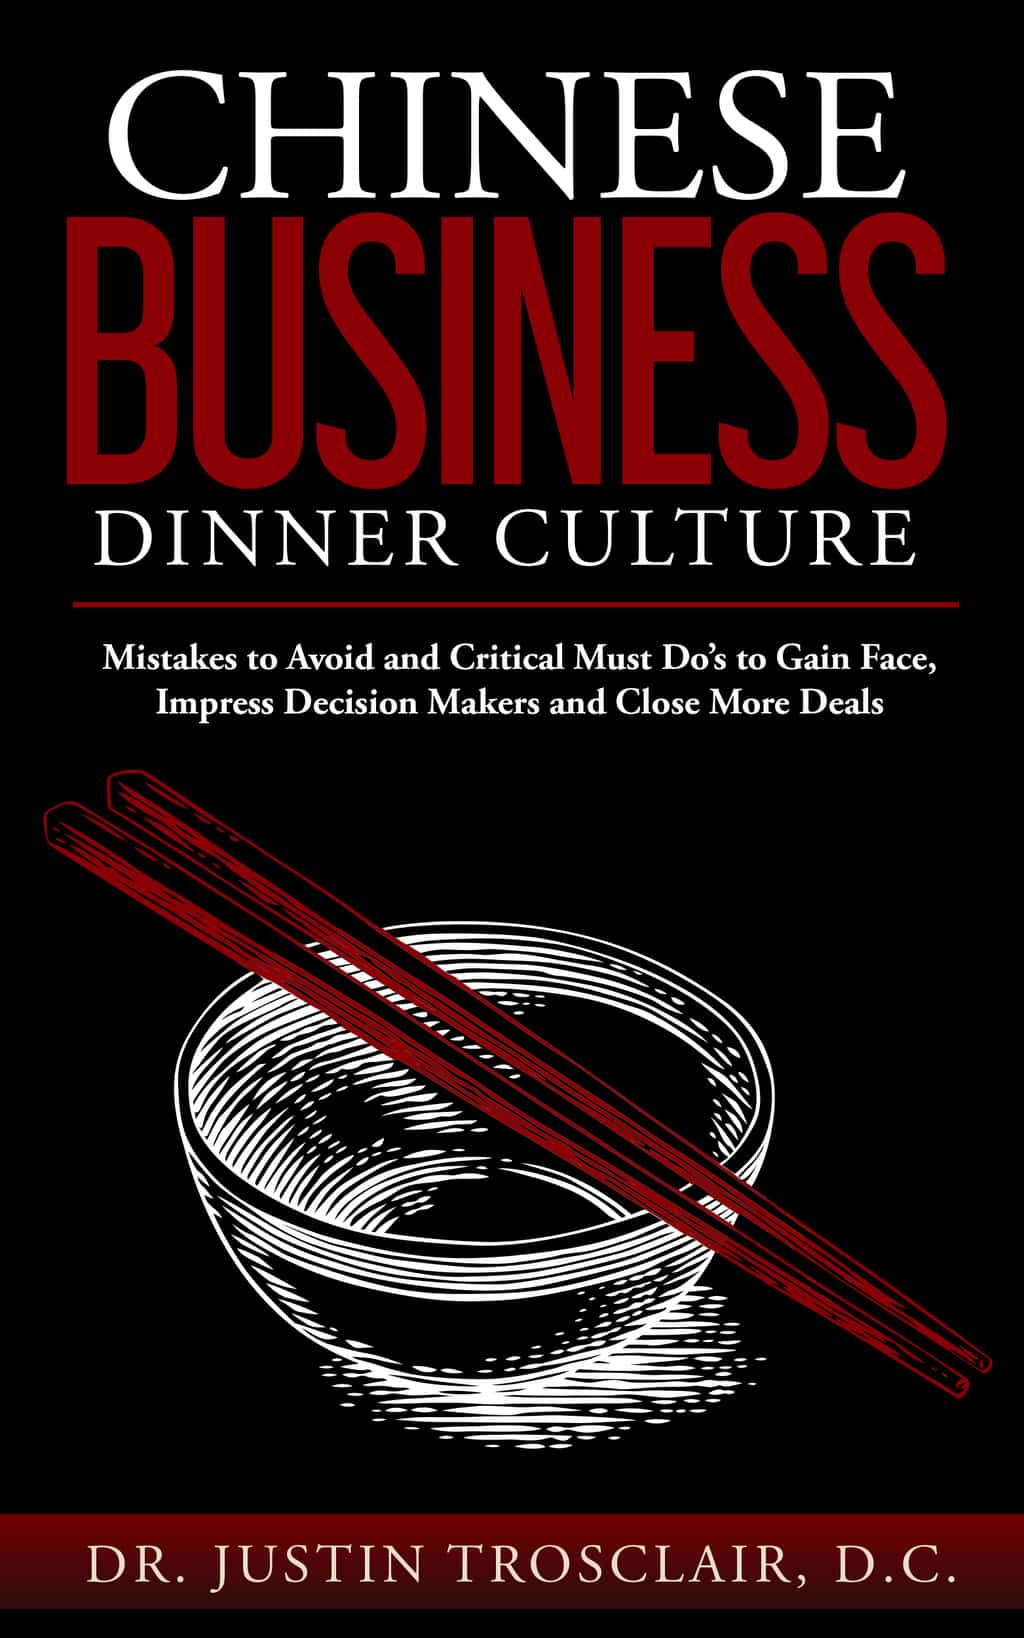 Chinese Business Dinner Culture Mistakes to Avoid and Critical Must Do's to Gain Face, Impress Decision Makers and Close More Deals